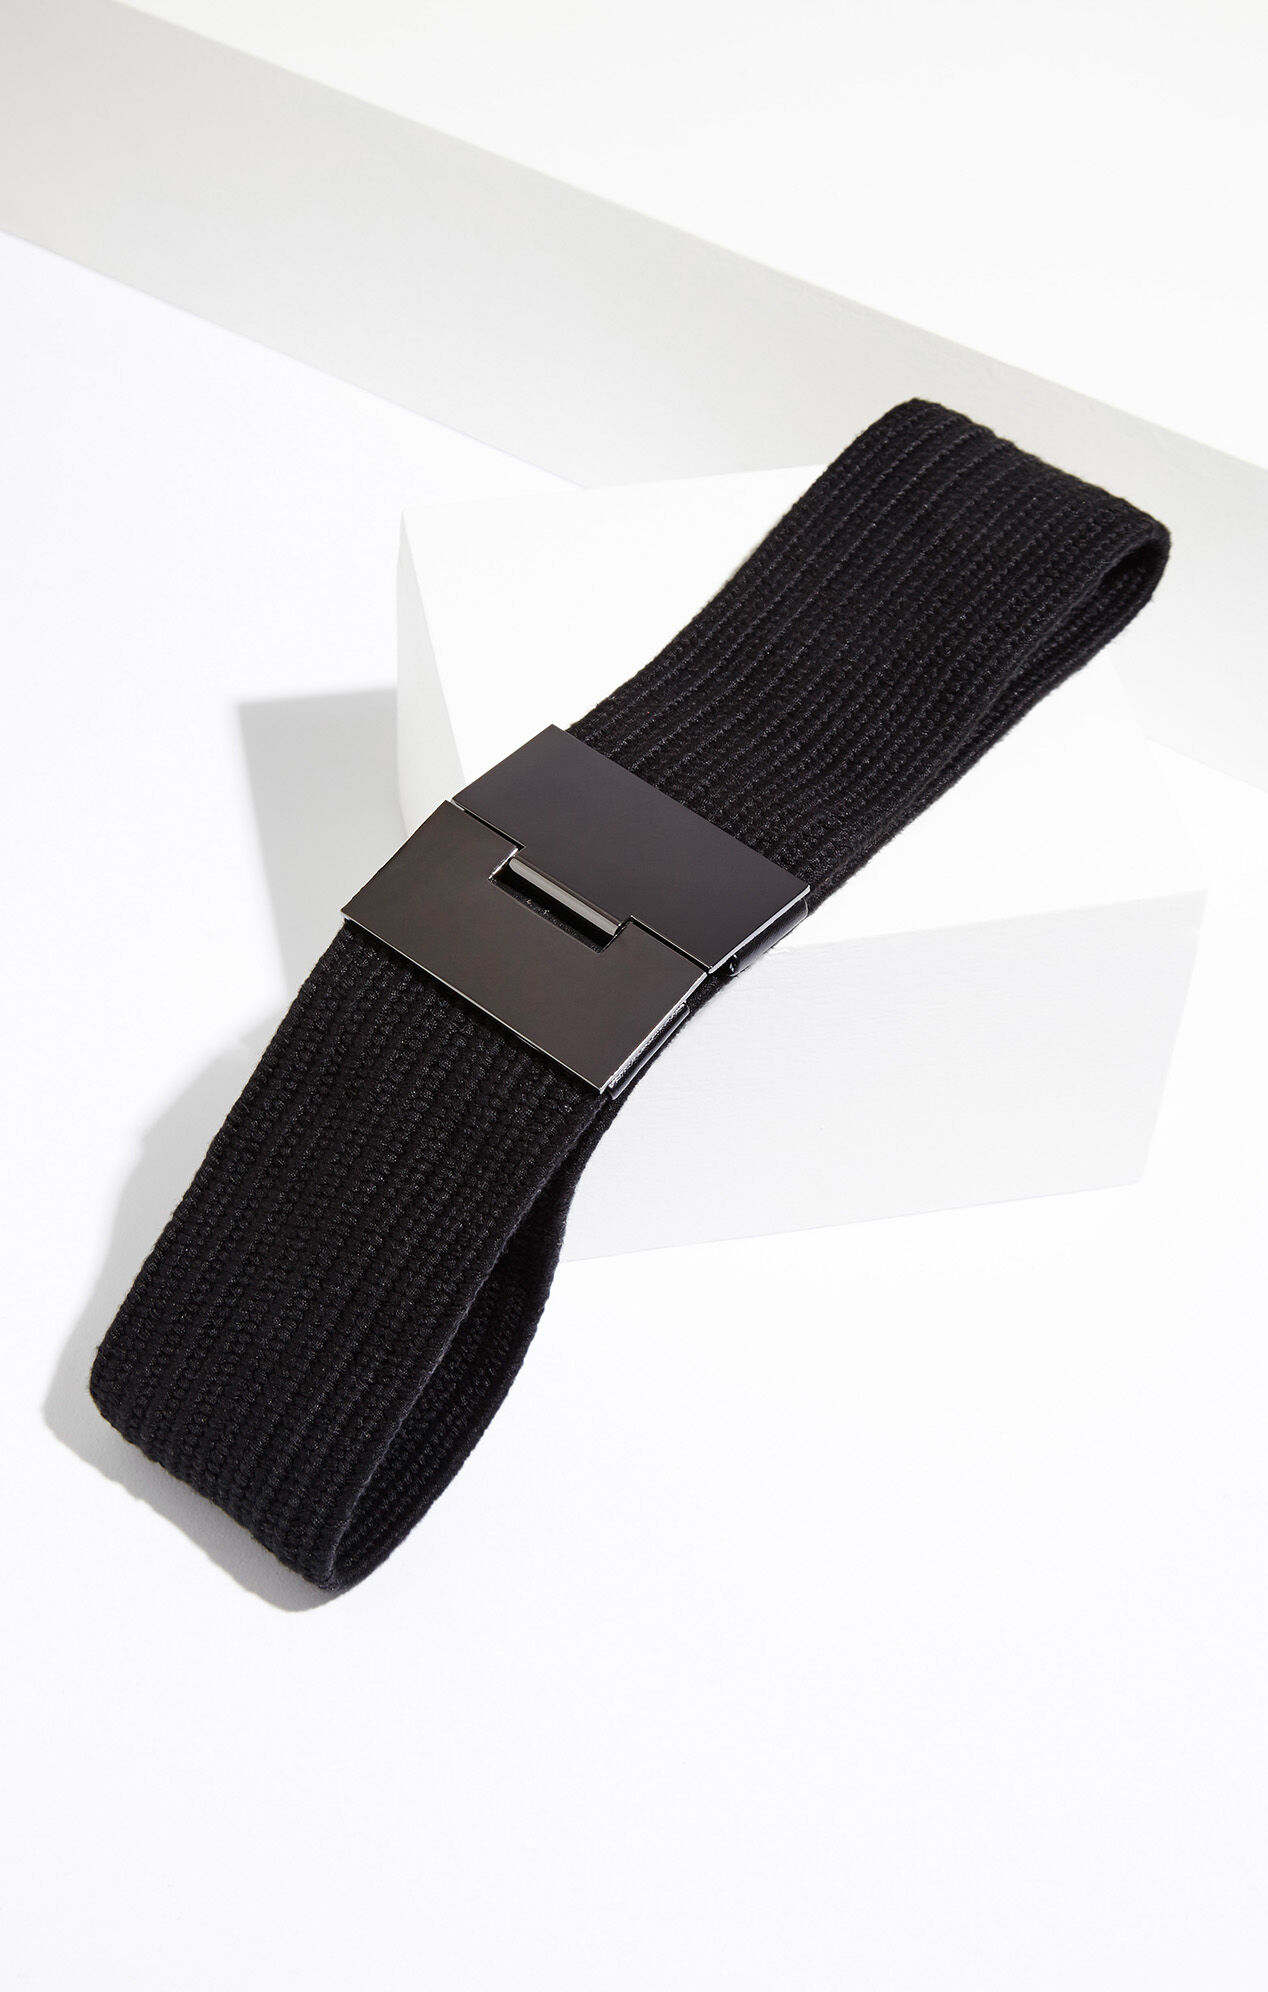 Online Shop for plate waist belt Promotion on Aliexpress Find the best deals hot plate waist belt. Top brands like baoxiu, bestybt, Sterglaw, Liva girl, KLV, hirigin, Giraffita, feitong, HEALMEYOU, IFENDEI for your selection at Aliexpress.